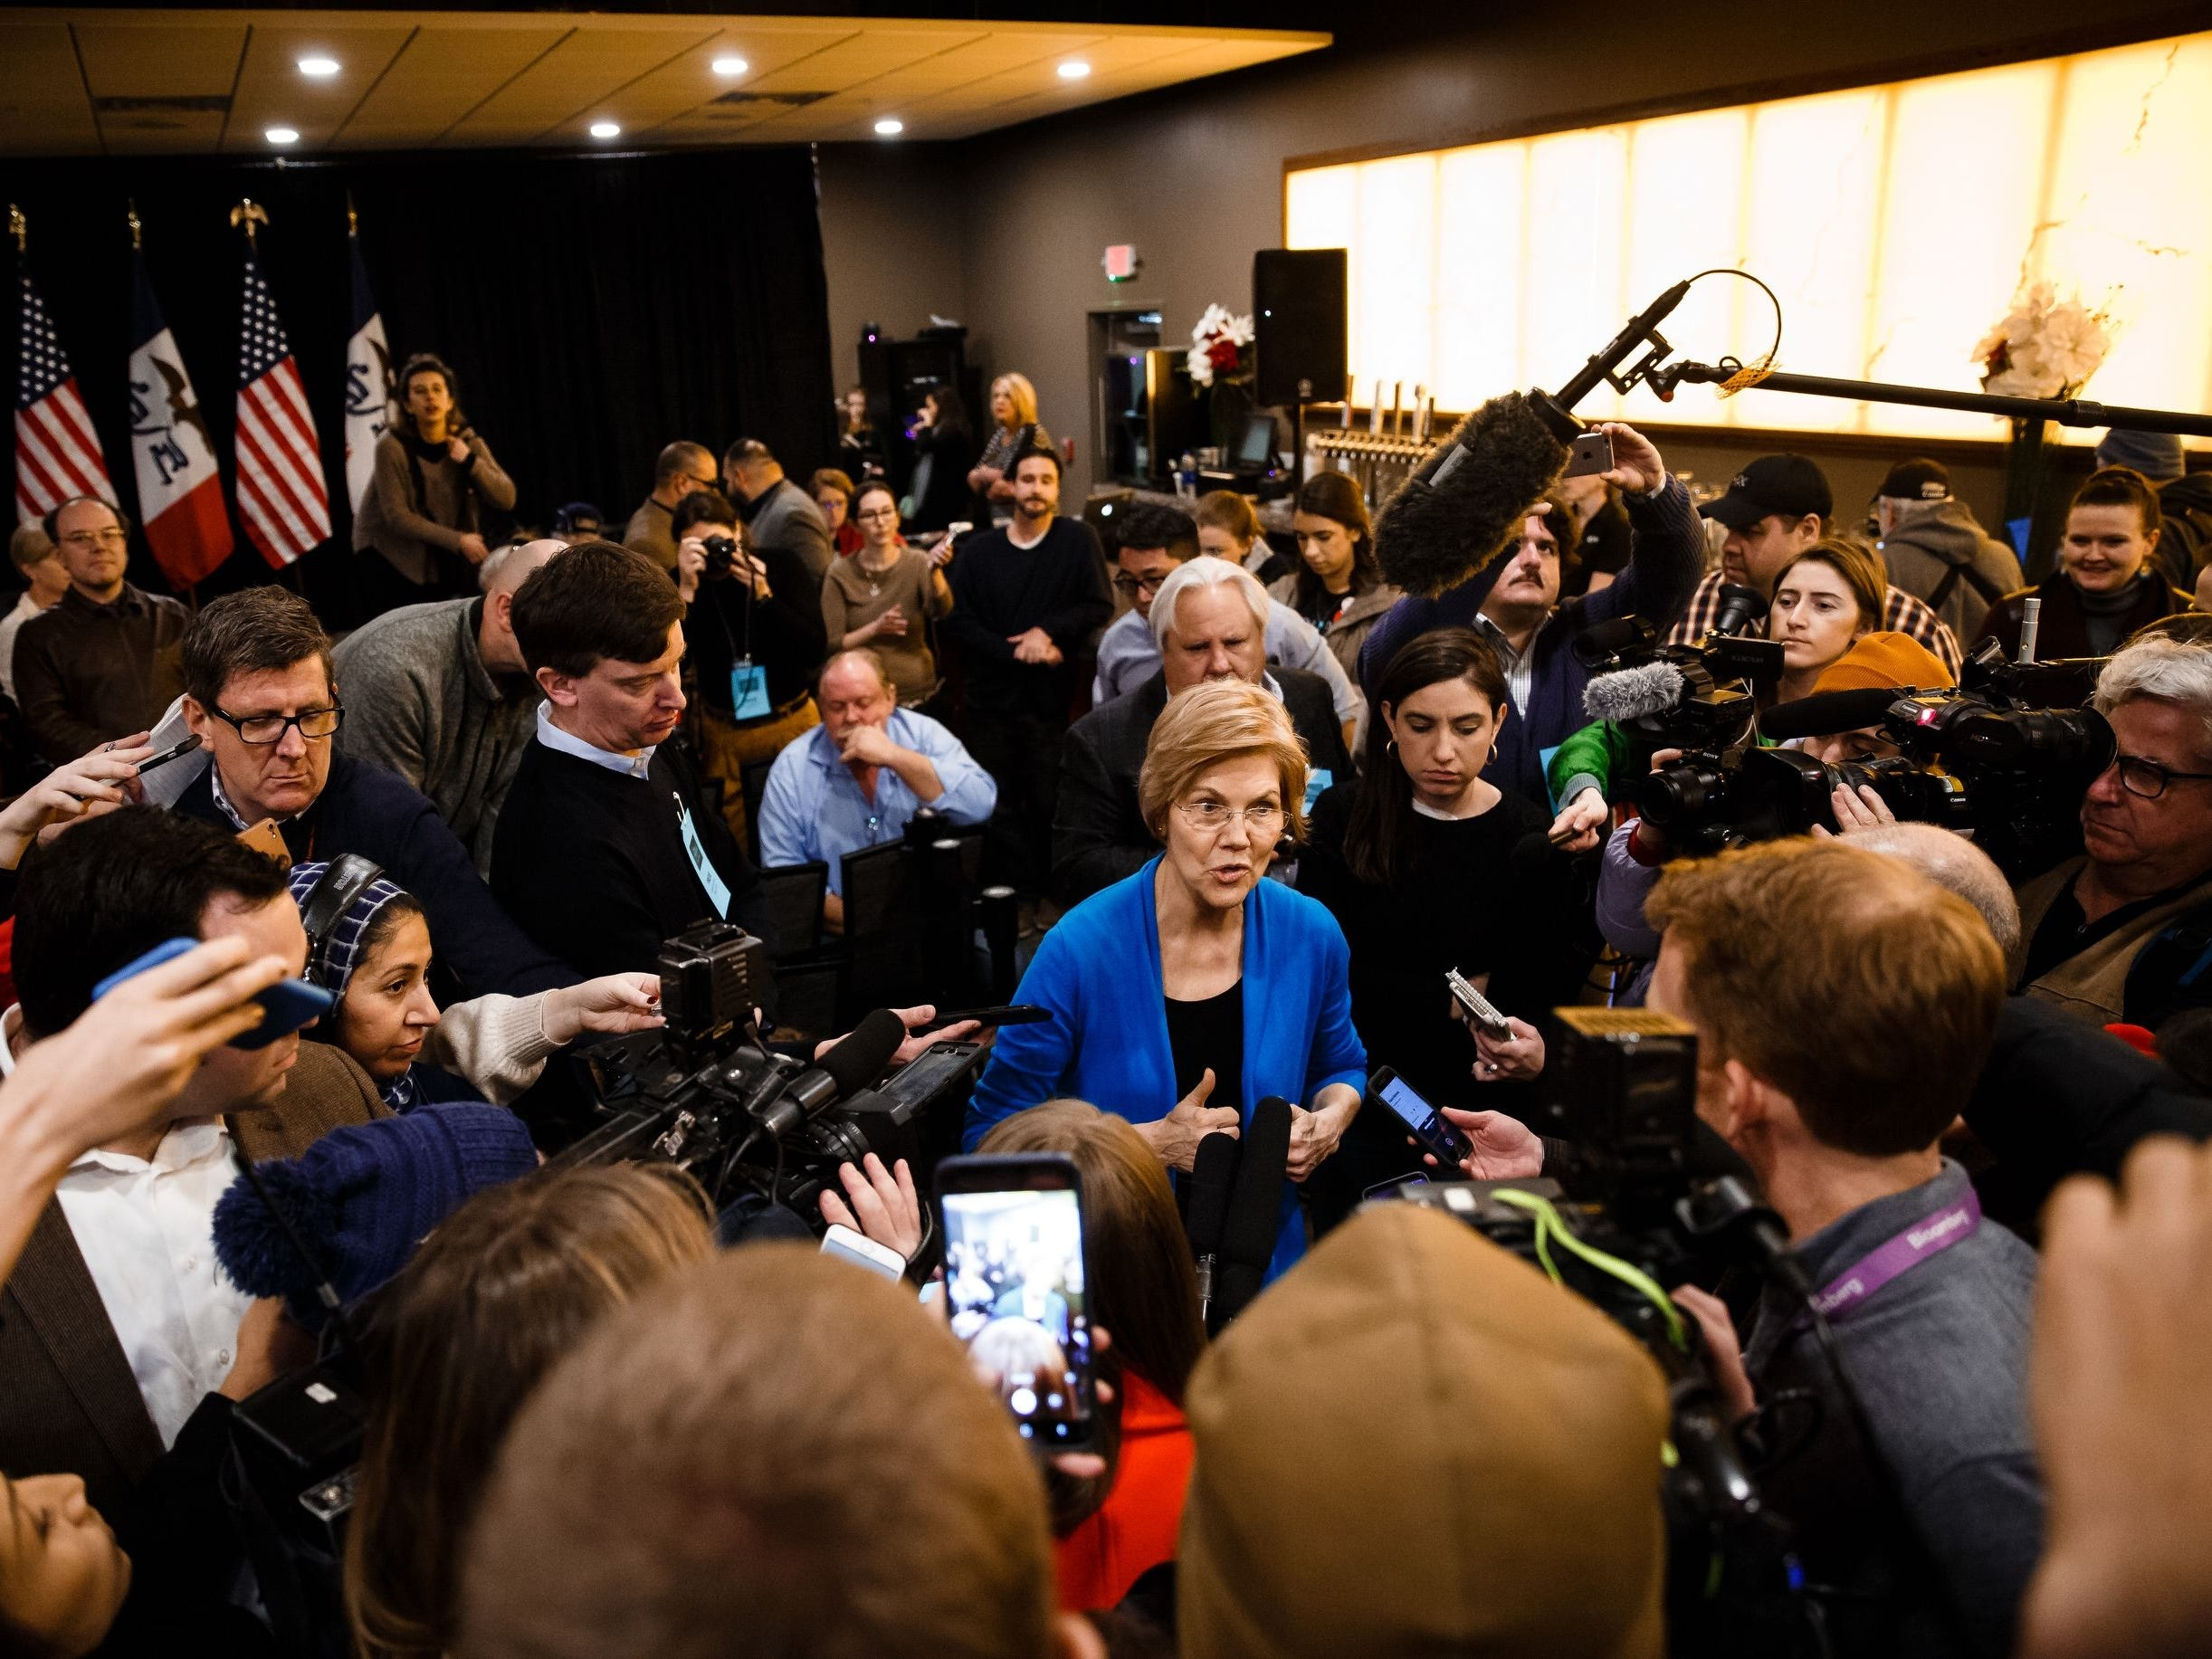 Sen. Elizabeth Warren (D-MA) speaks  with members of the press during an event in Council Bluffs.